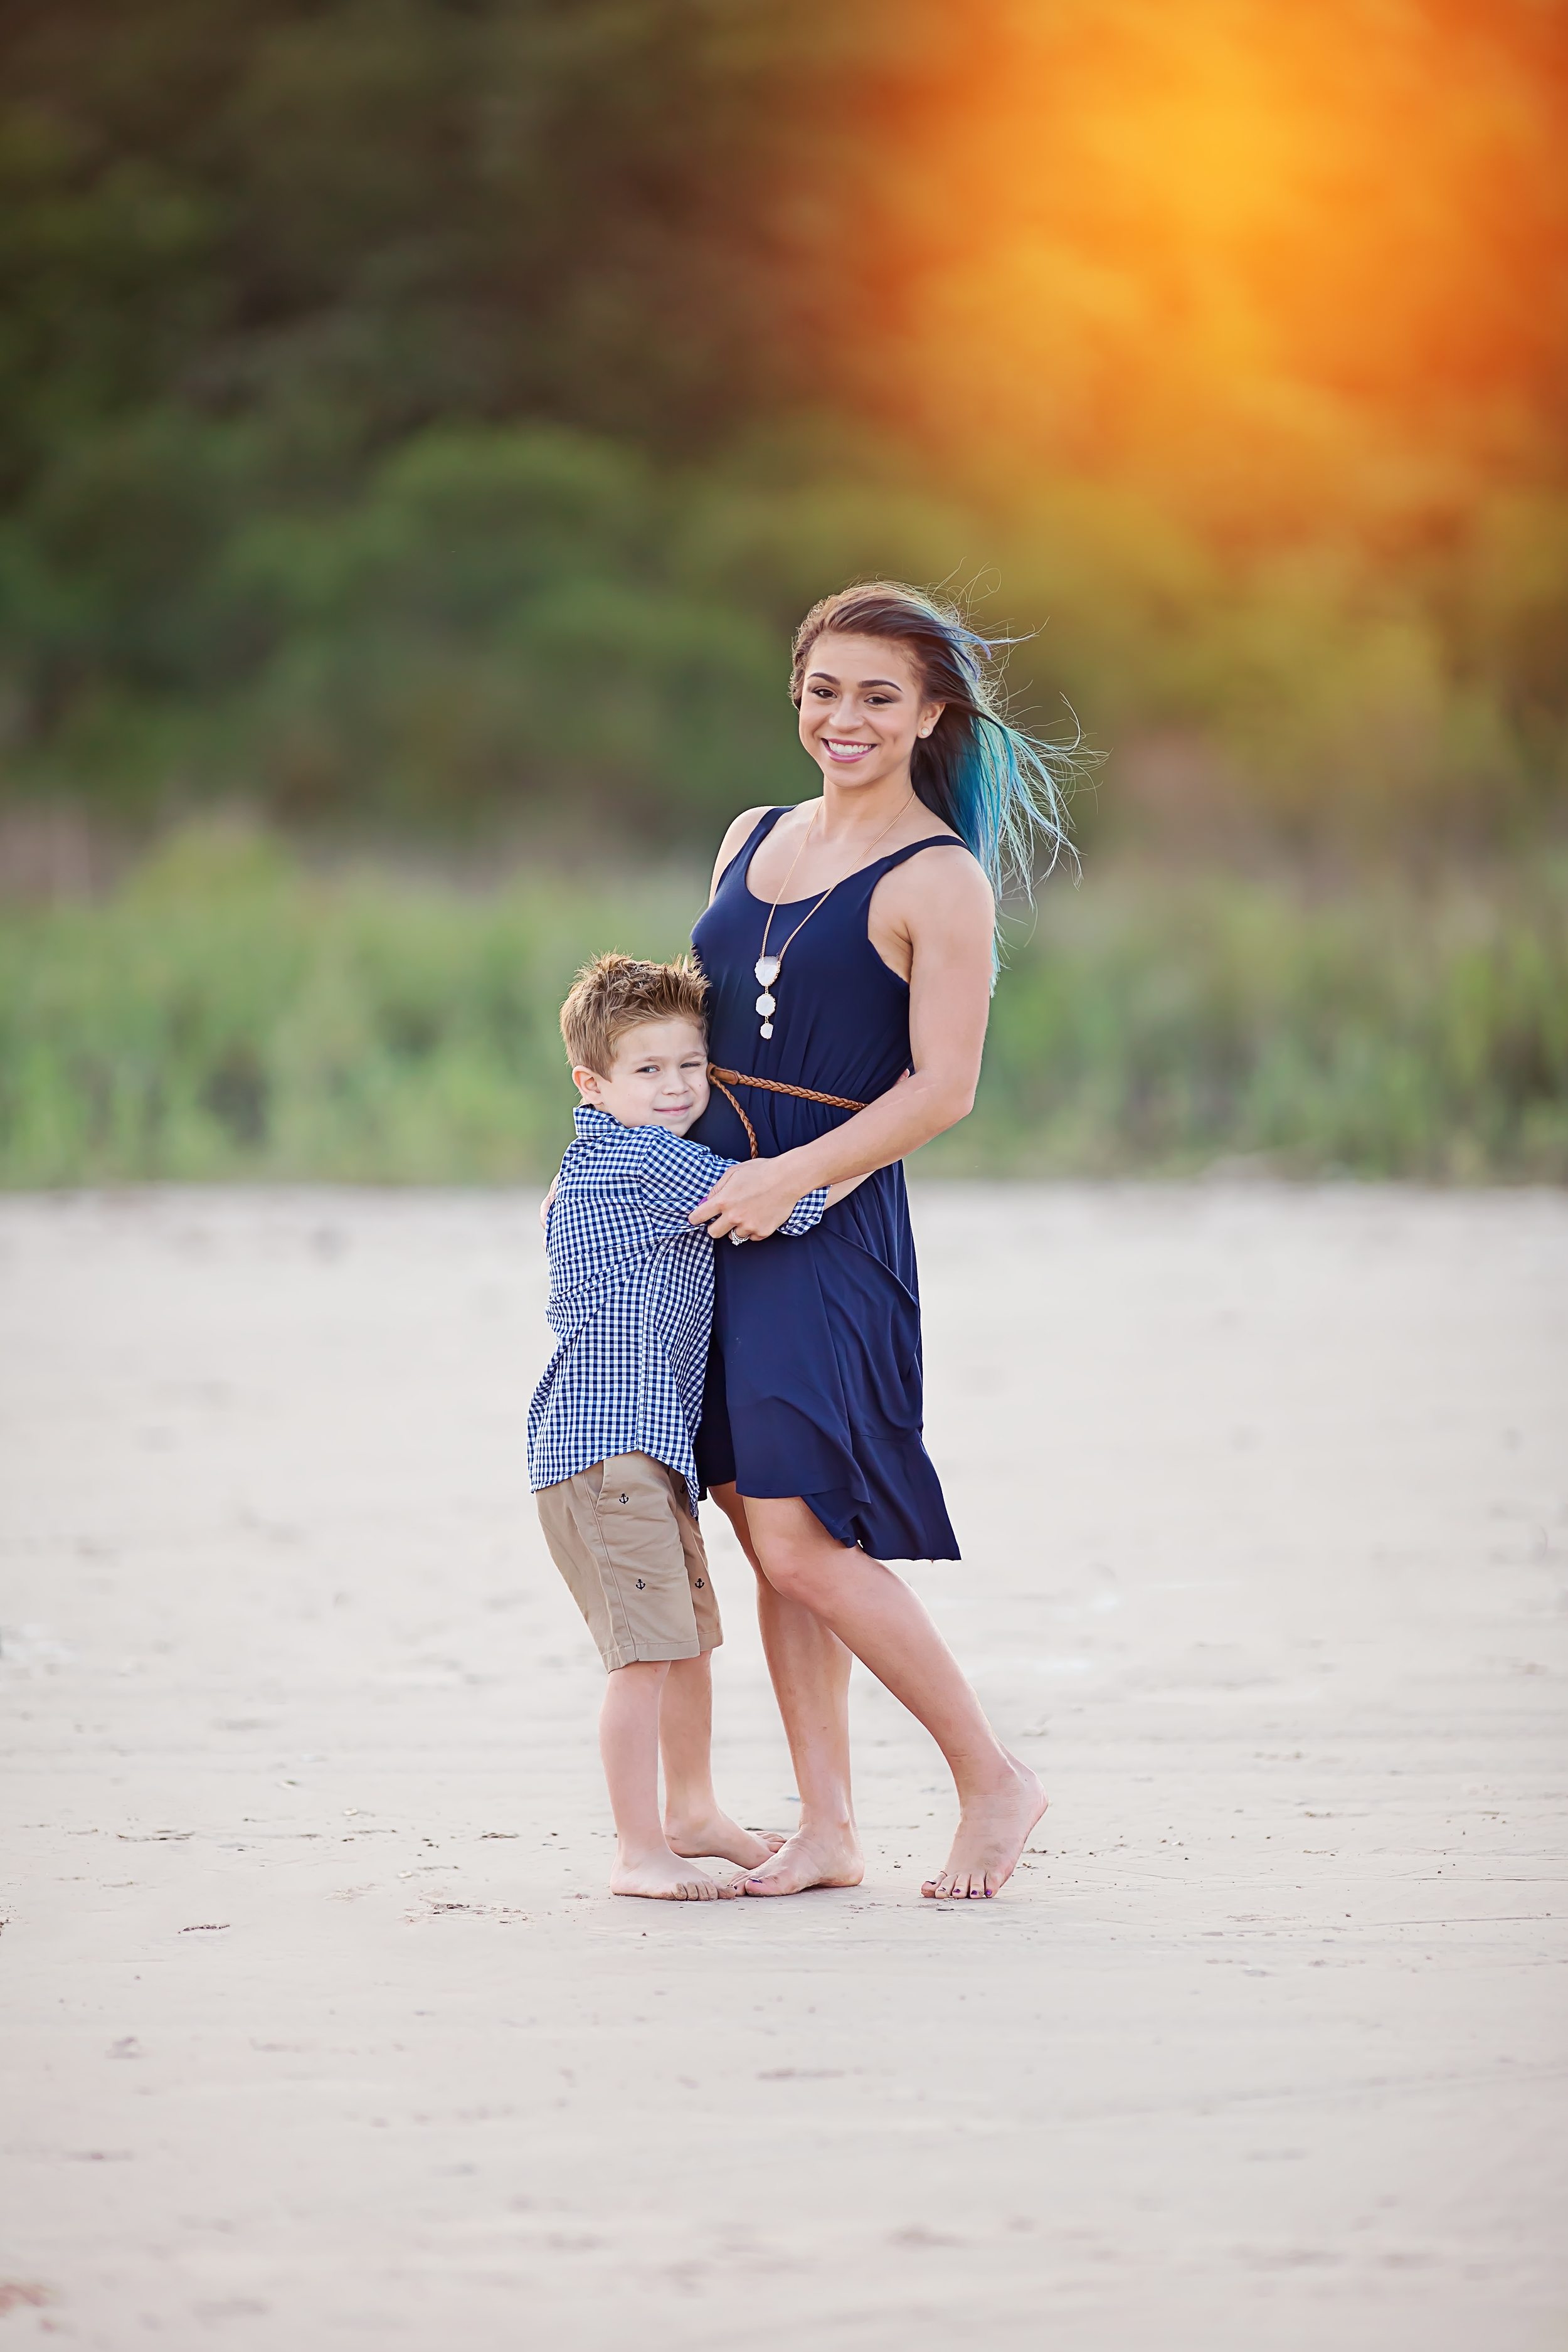 Beautiful mommy and son!